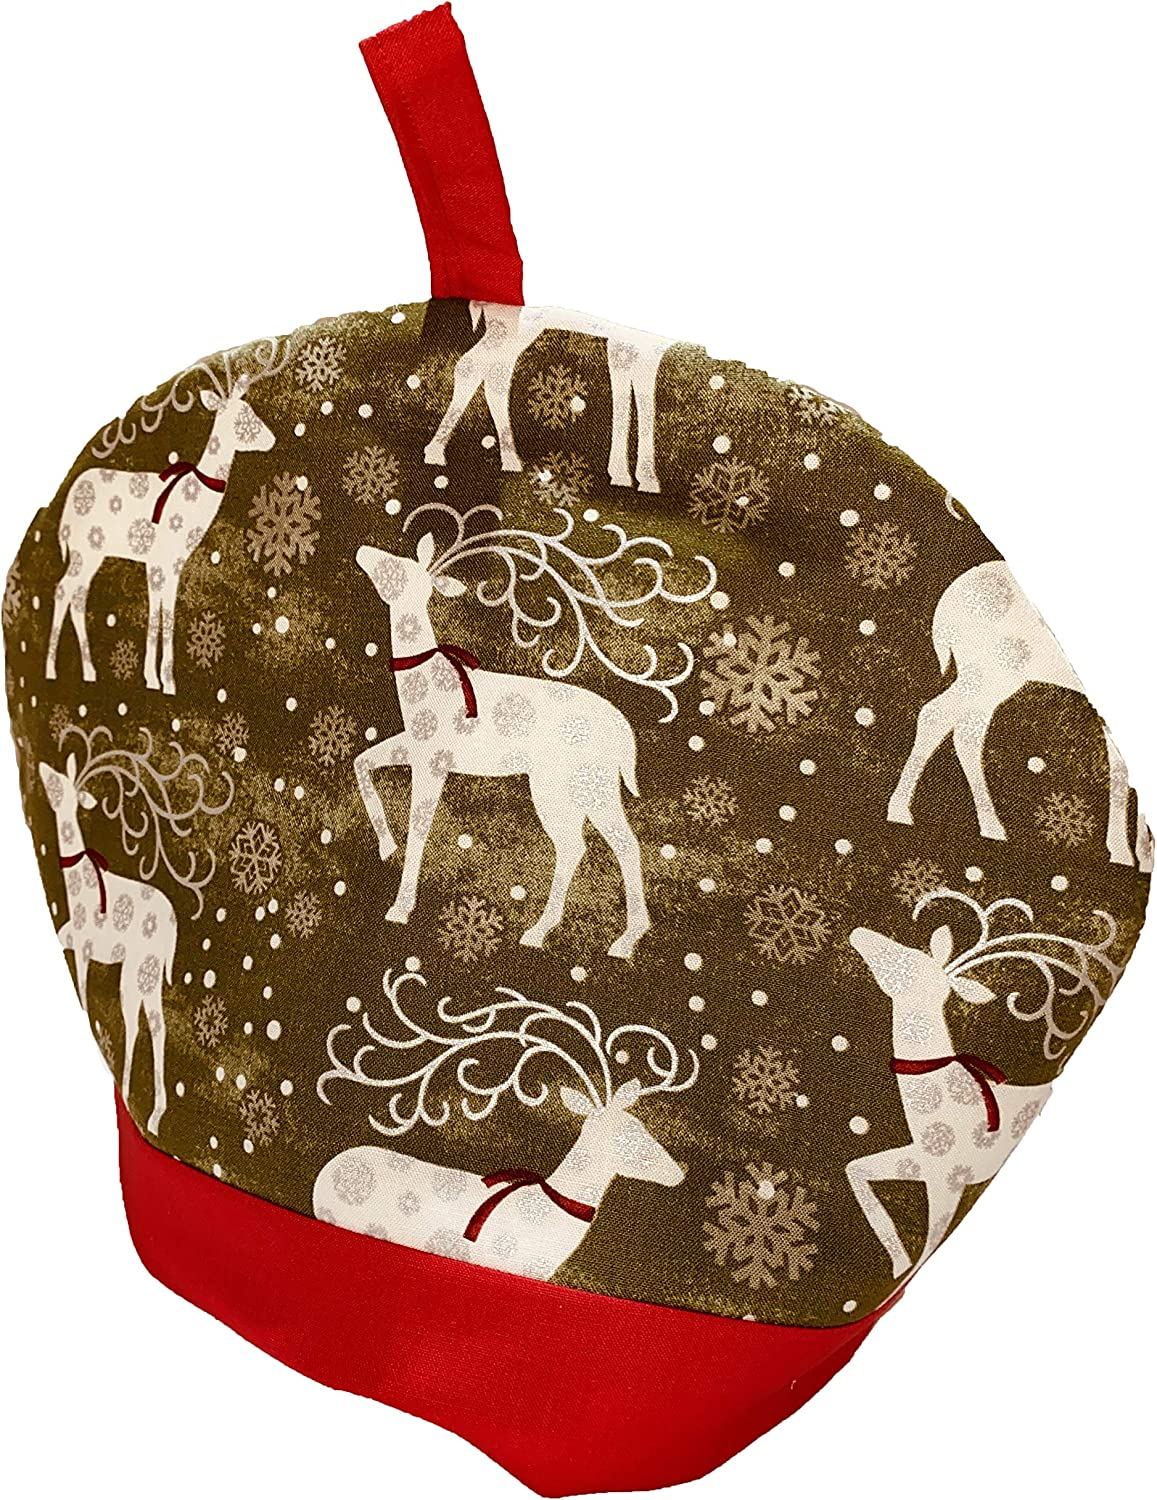 Whimsly Reindeer Product Tea Cozy Ranking TOP18